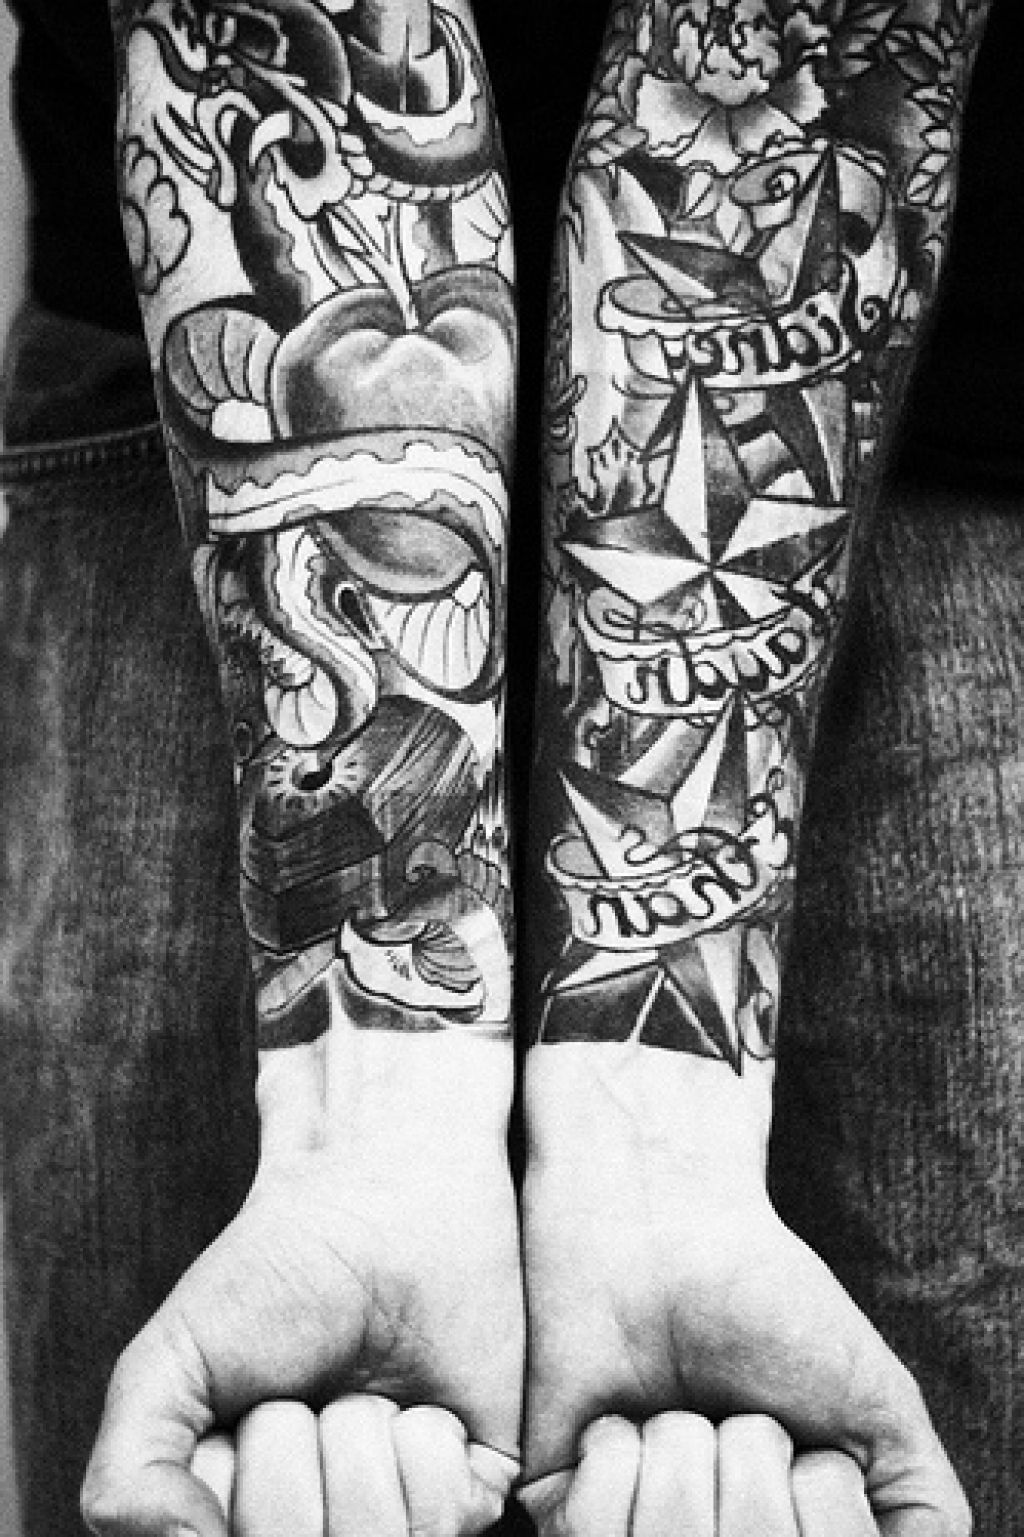 Music tattoo designs tattoo ideas pictures tattoo ideas pictures - Koi Fish Sleeve Tattoo Tattoo Design Pictures 1024x1537 Jpeg